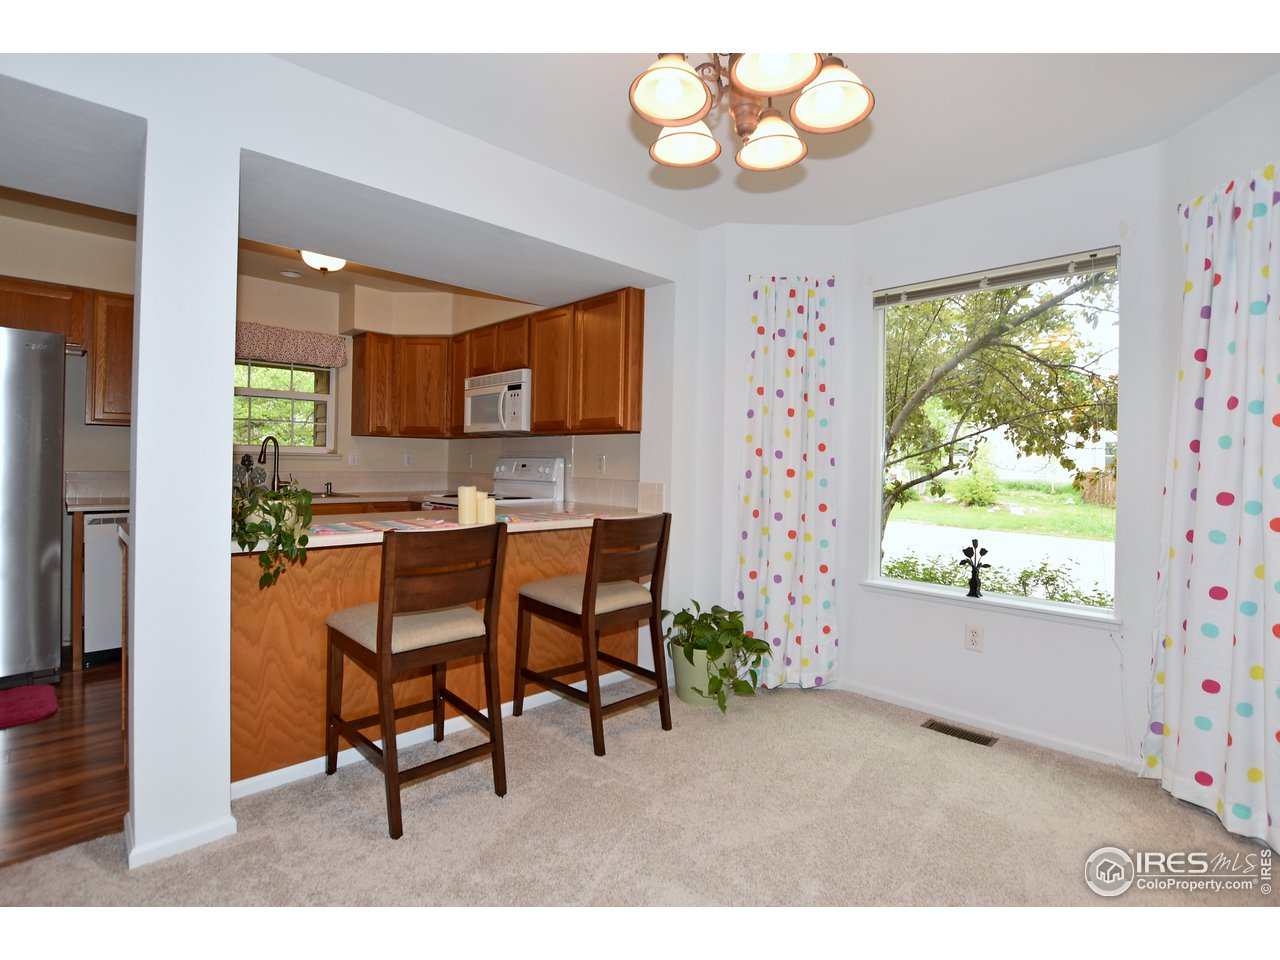 The dining room/nook area also features a breakfast bar into the kitchen.